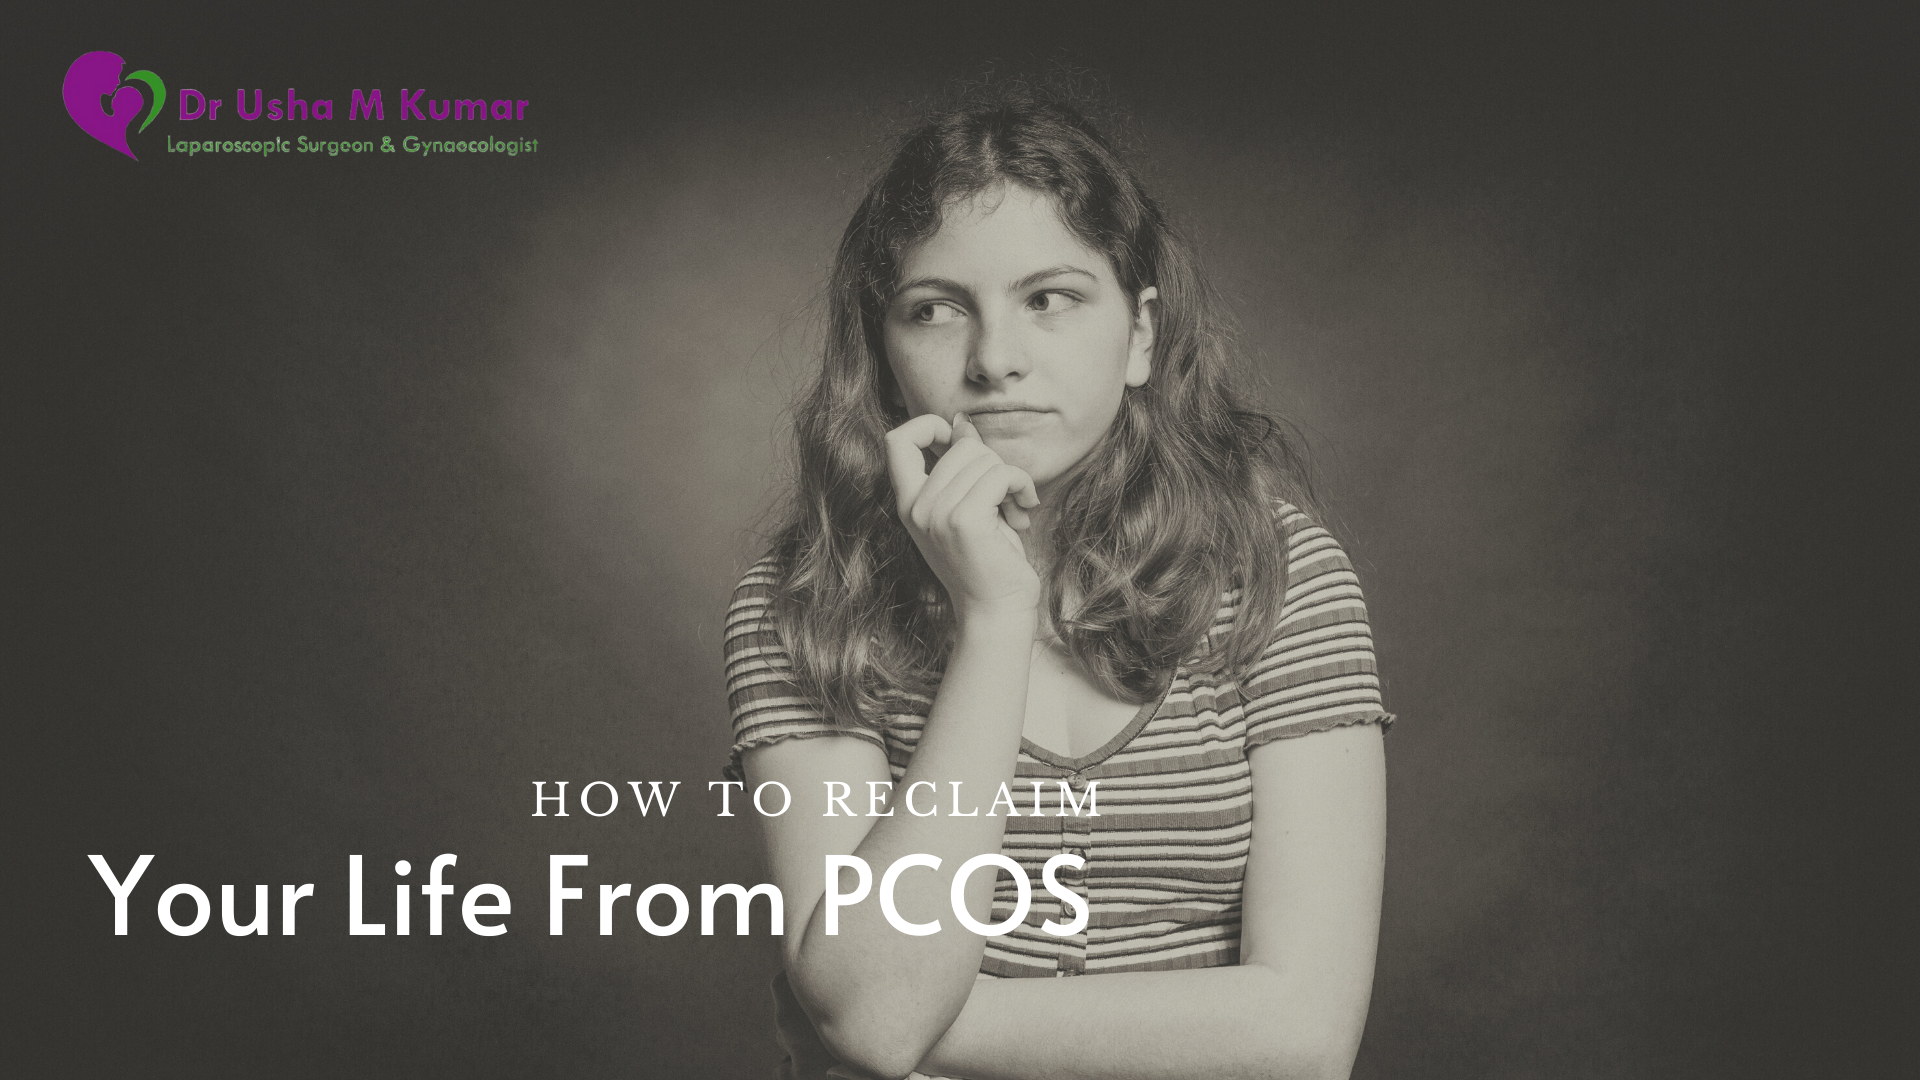 How to reclaim your life from PCOS